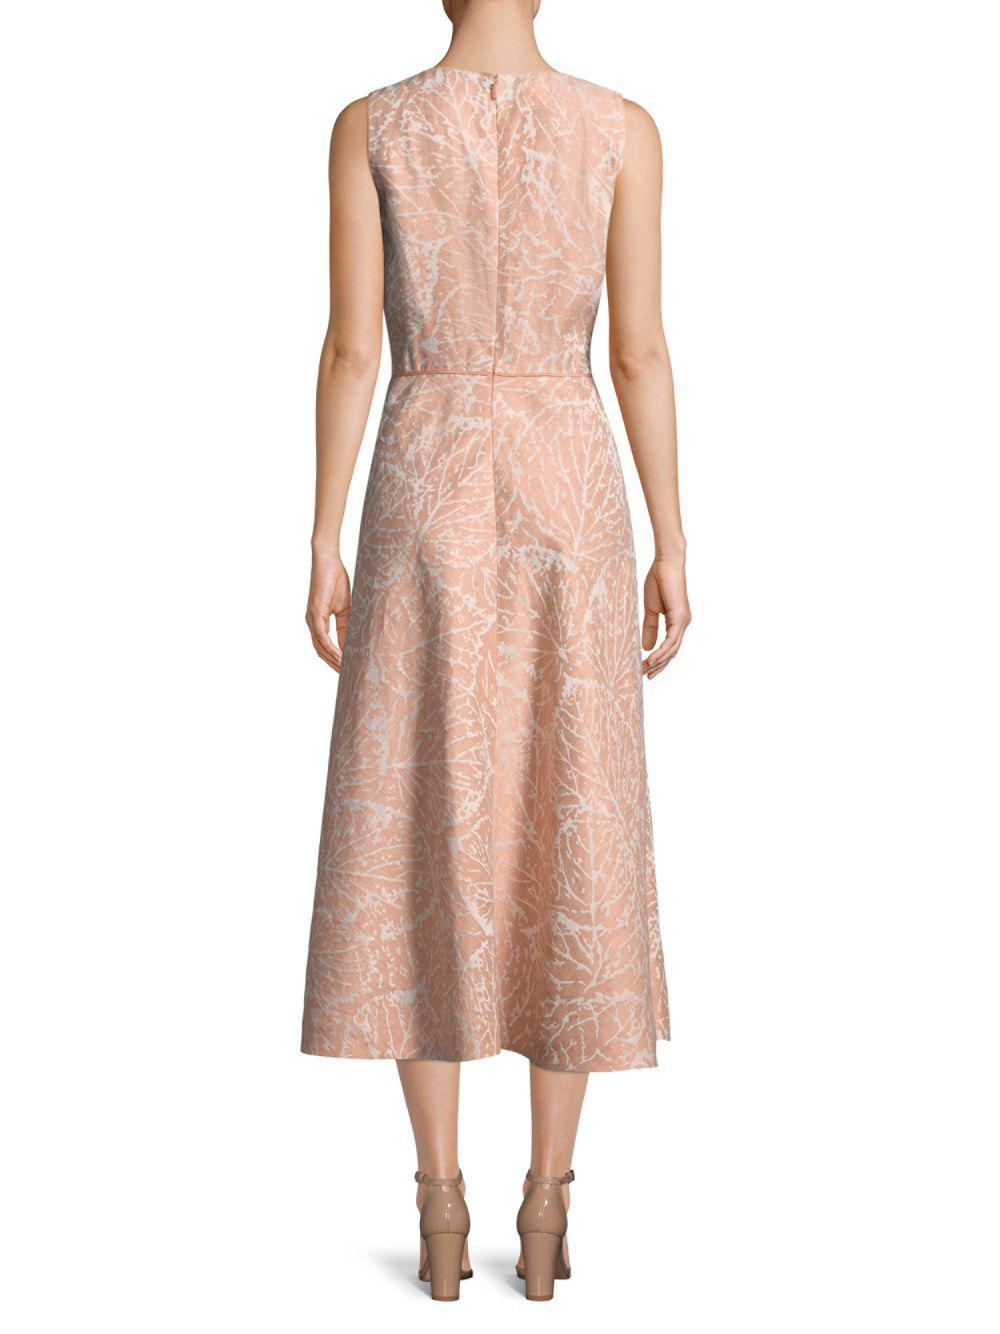 14aab1c46aa83 Lyst - Lafayette 148 New York Aileen Jacquard A-line Dress in Pink